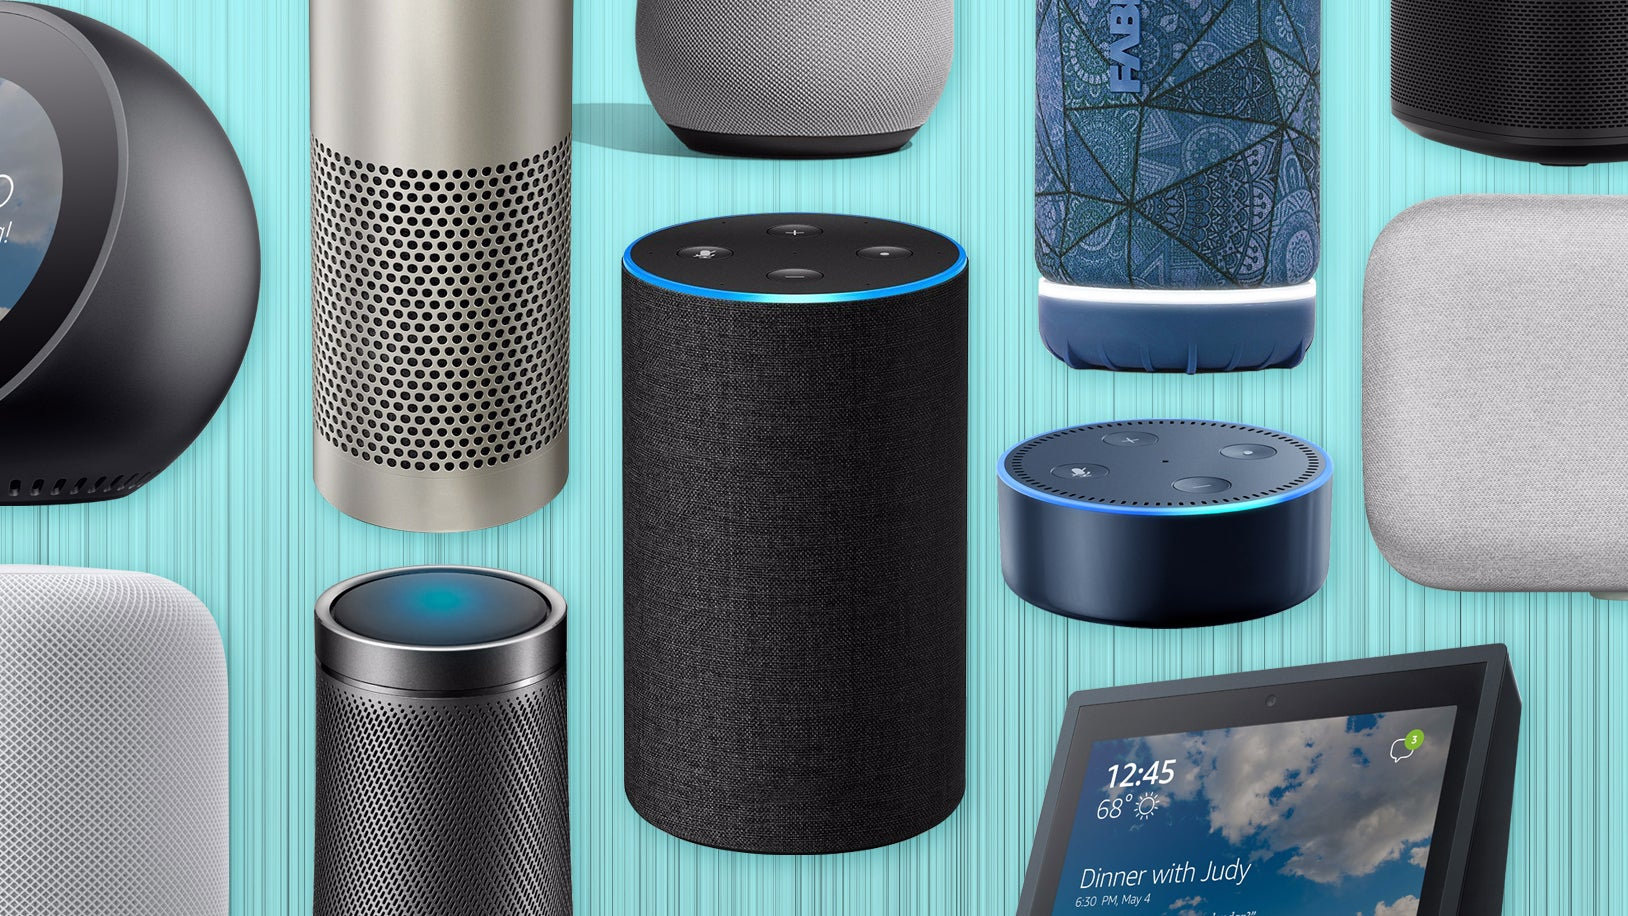 Image result for smart speakers with voice assistant